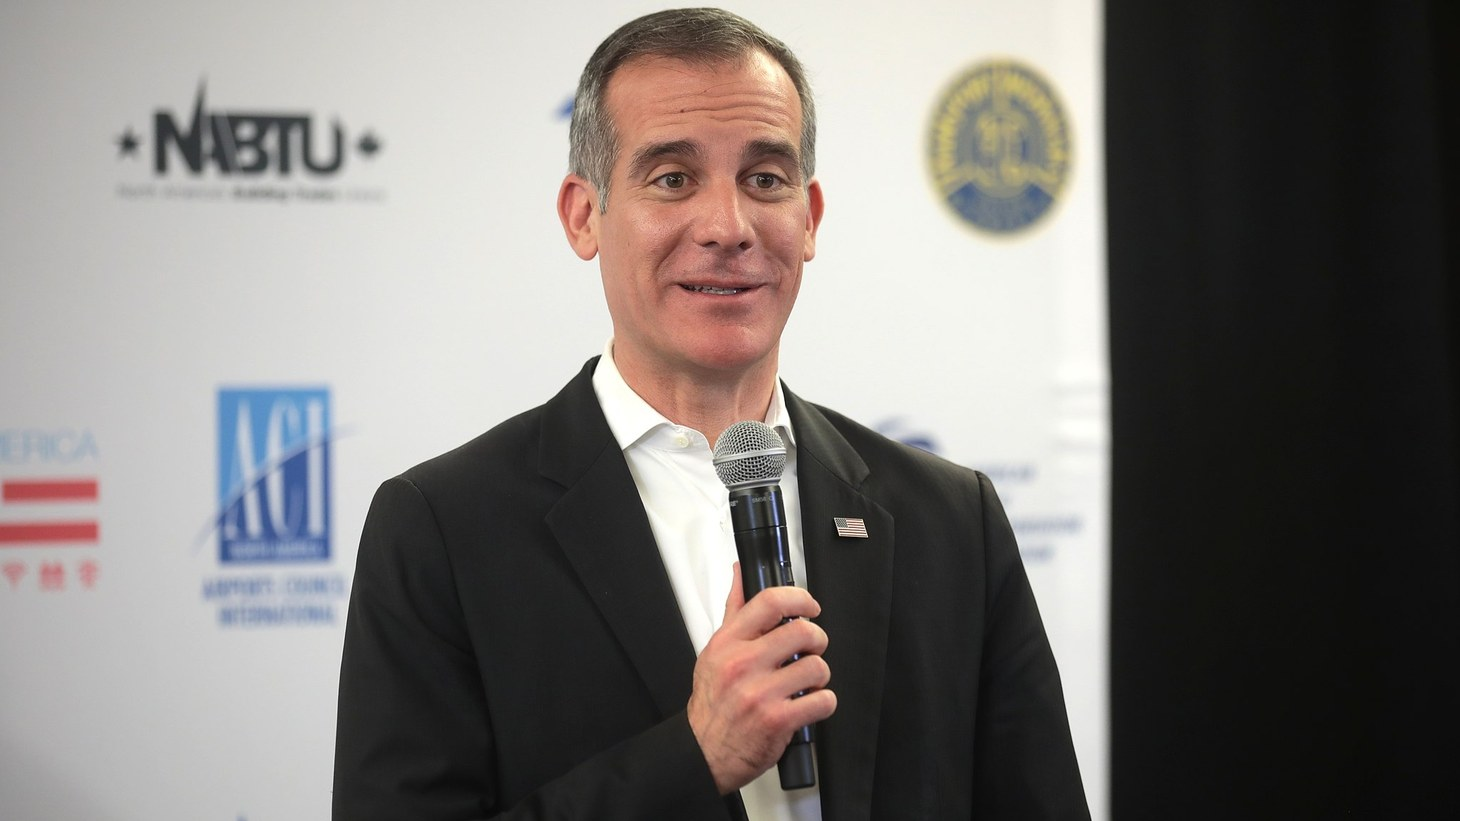 Mayor of Los Angeles Eric Garcetti speaking with the media at the Moving America Forward Forum hosted by United for Infrastructure at the Student Union at the University of Nevada, Las Vegas in Las Vegas, Nevada.